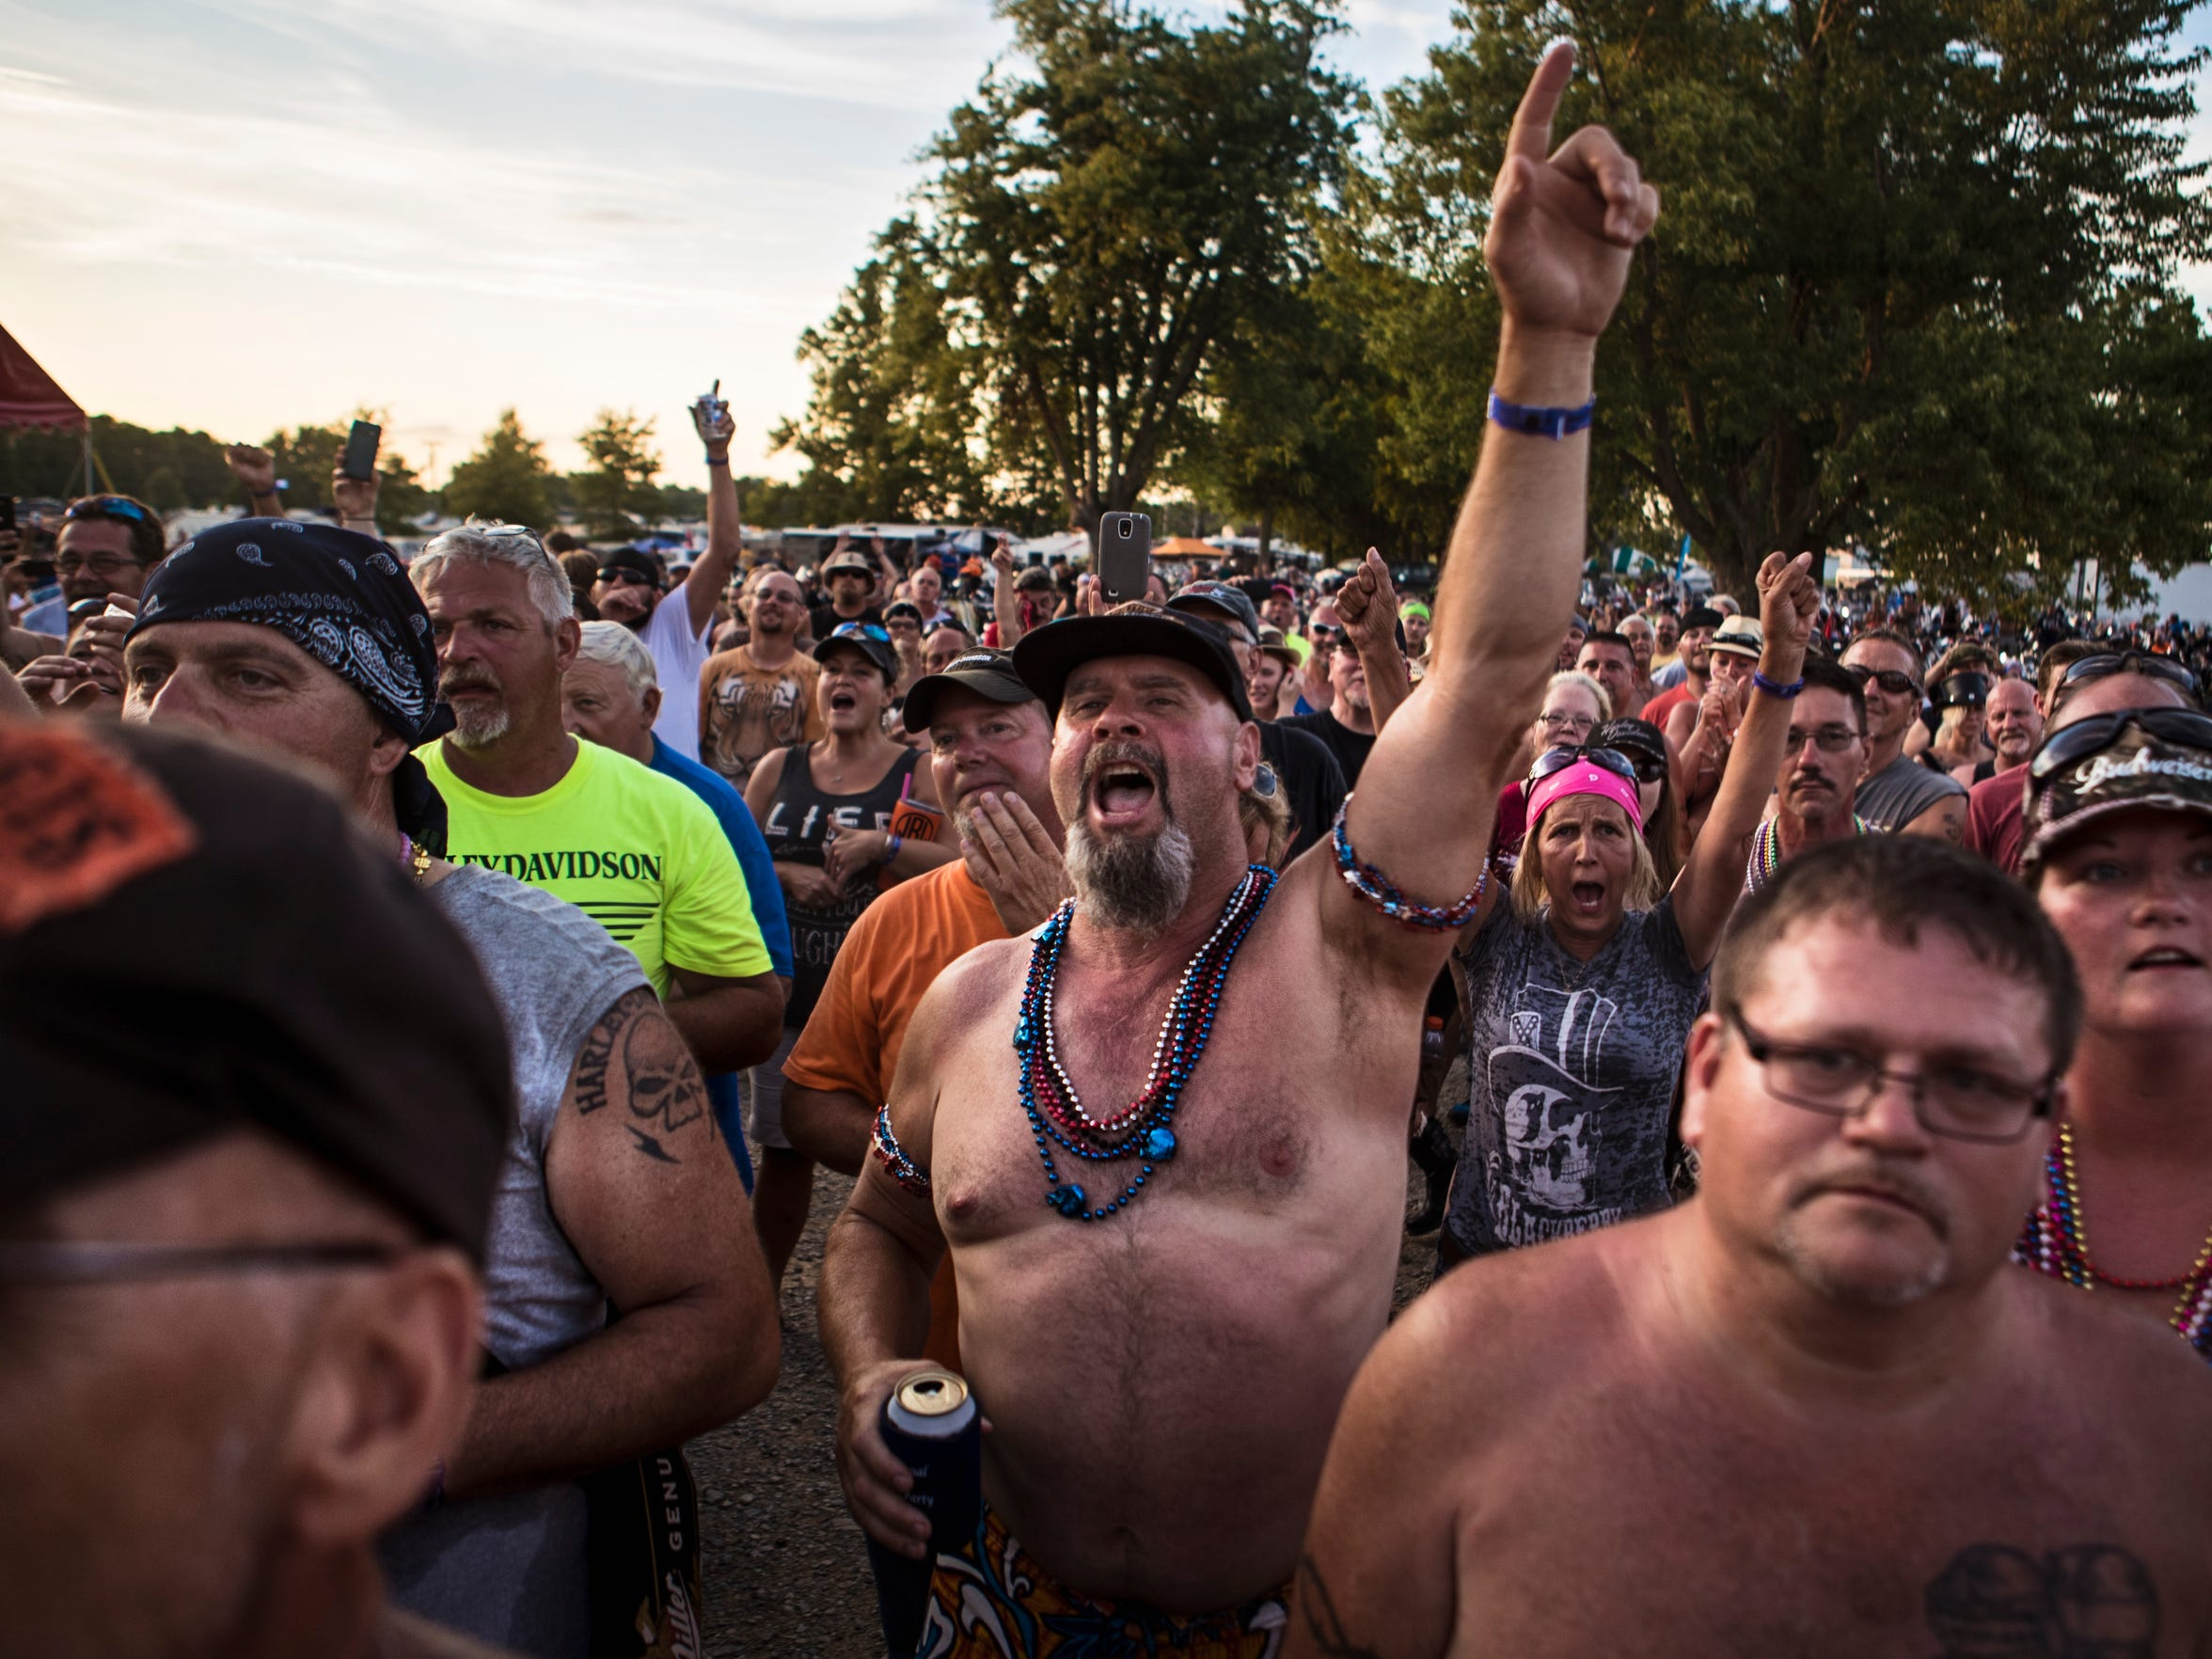 Spectators cheer on contestants during the Miss Sturgis